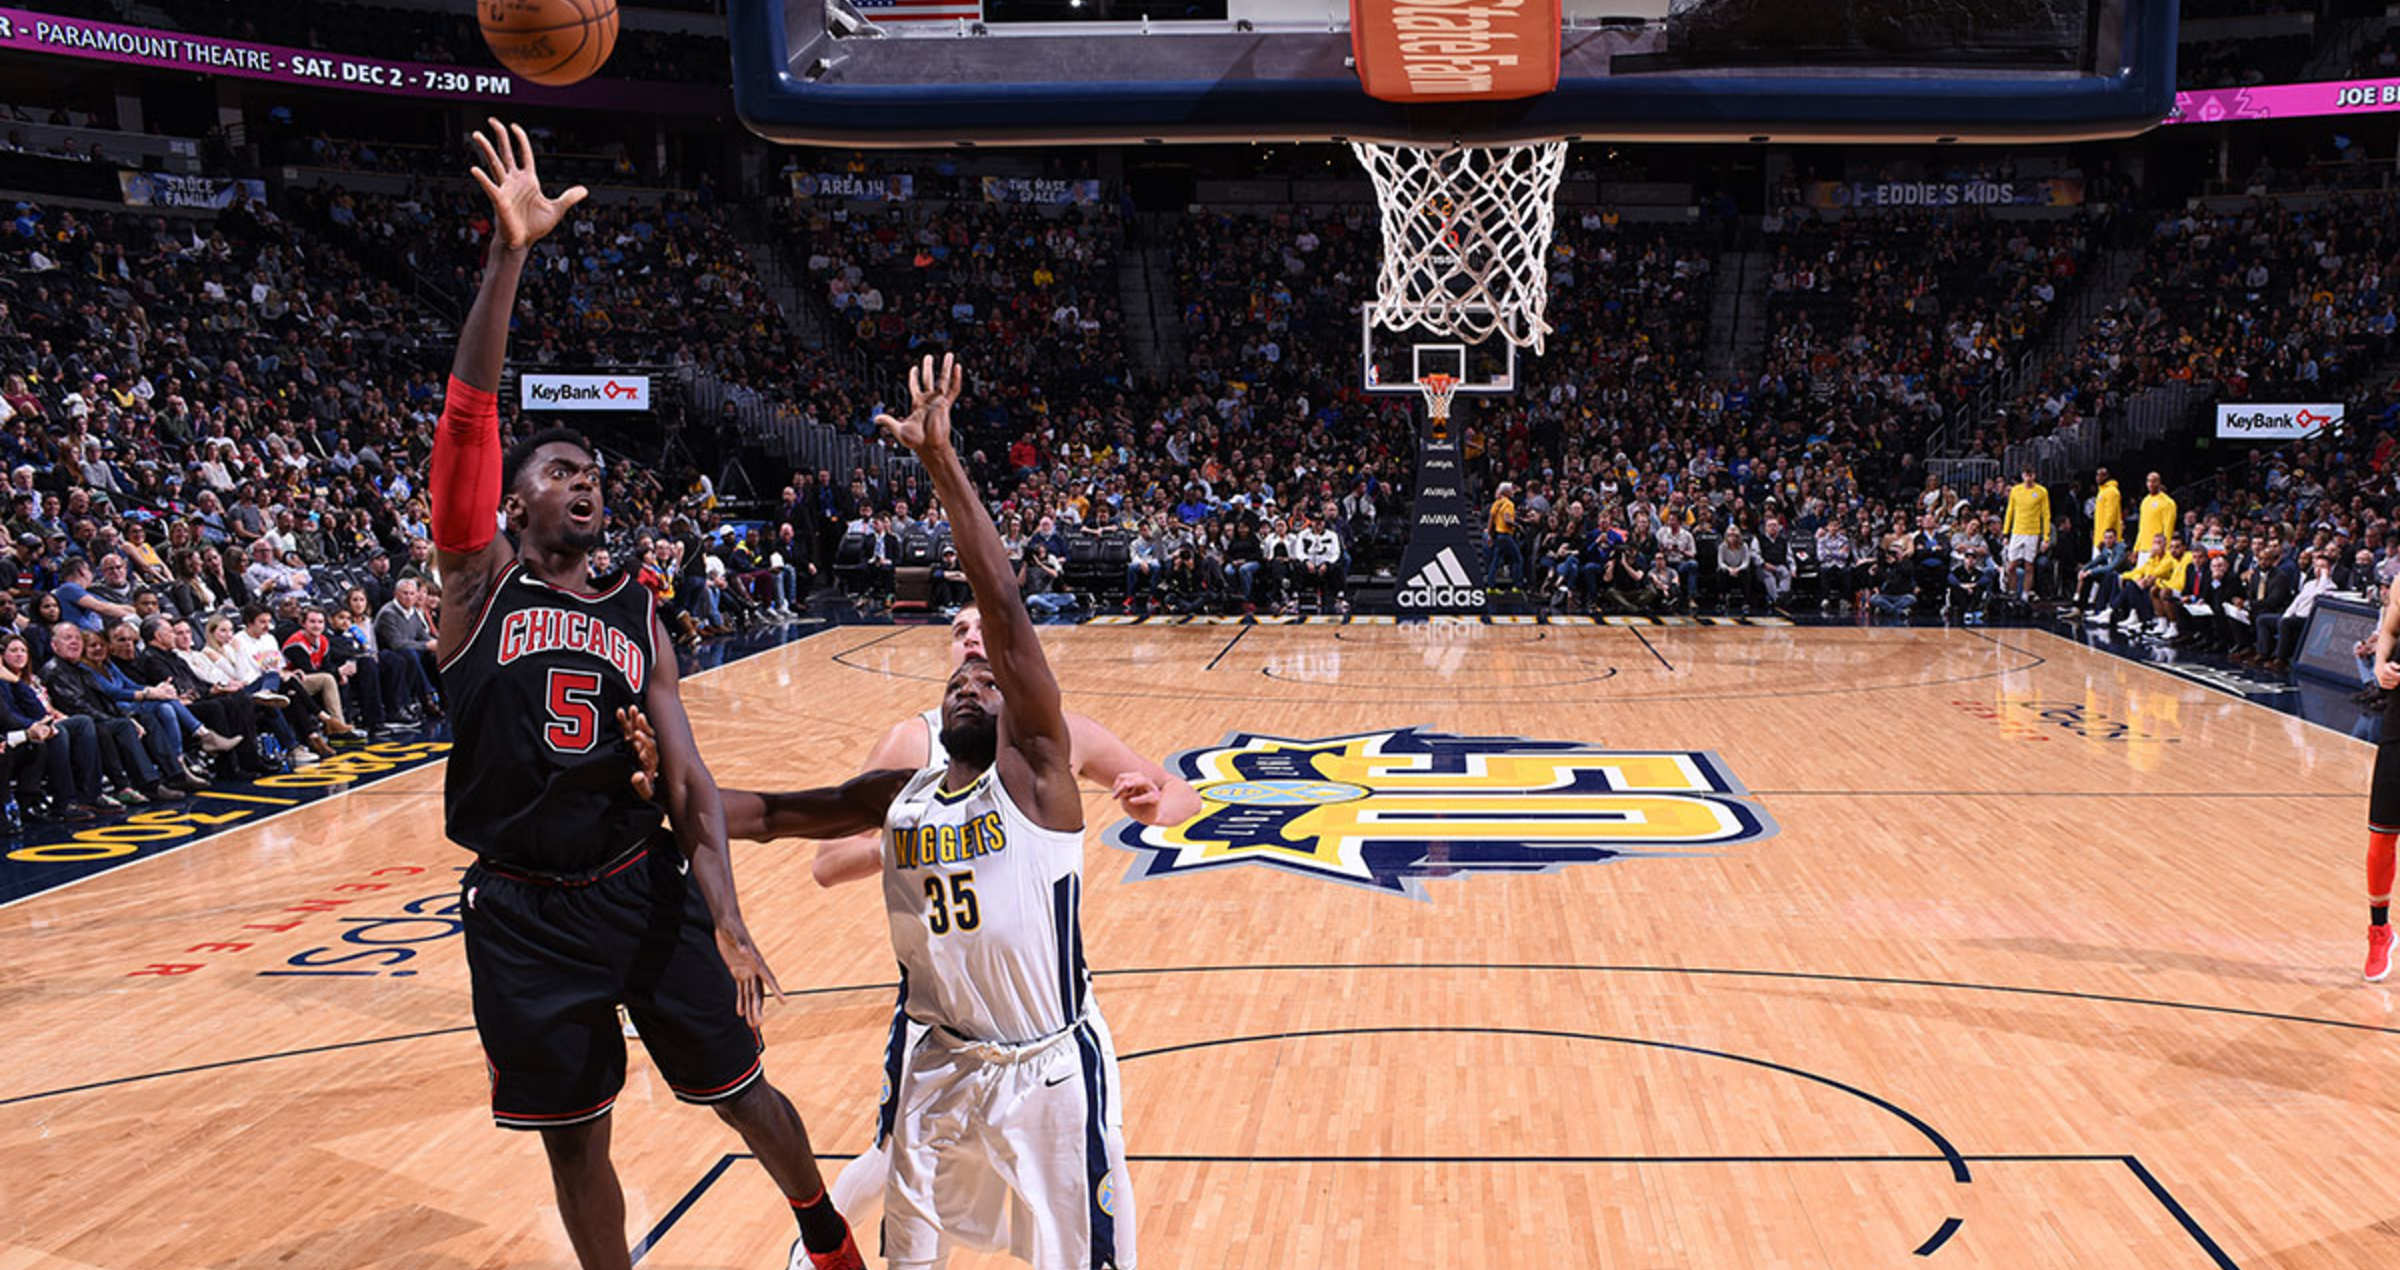 Bobby Portis shoots the ball against the Denver Nuggets